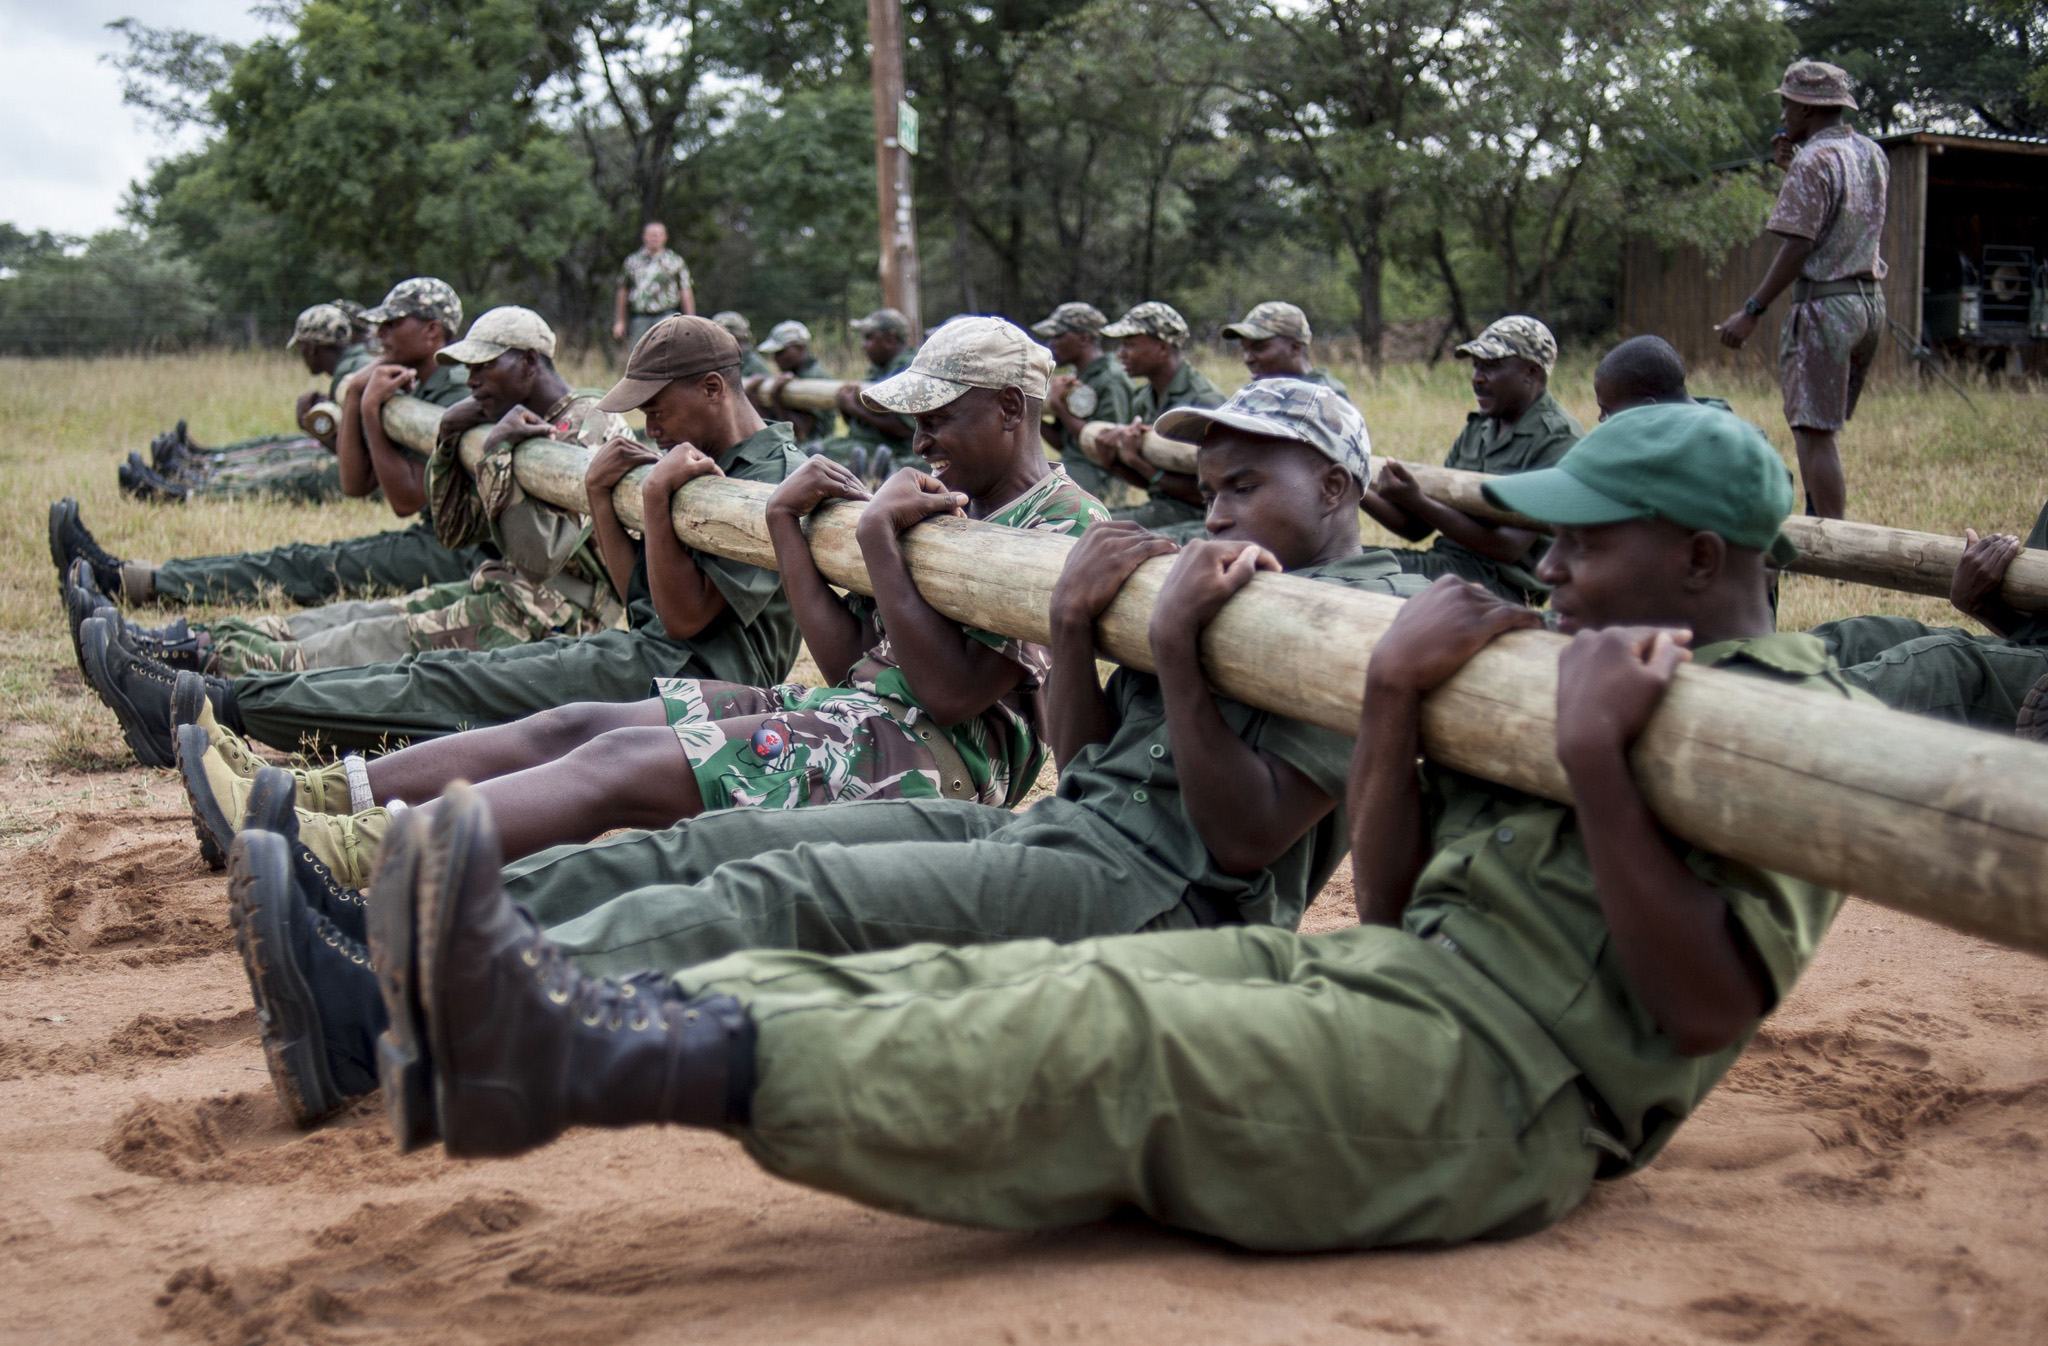 """Qualified anti-poaching rangers and new recruits train during an """"Op-Fok"""" training session at the Nkwe Tactical Training Academy in Vaalwater in the Limpopo. South Africa."""